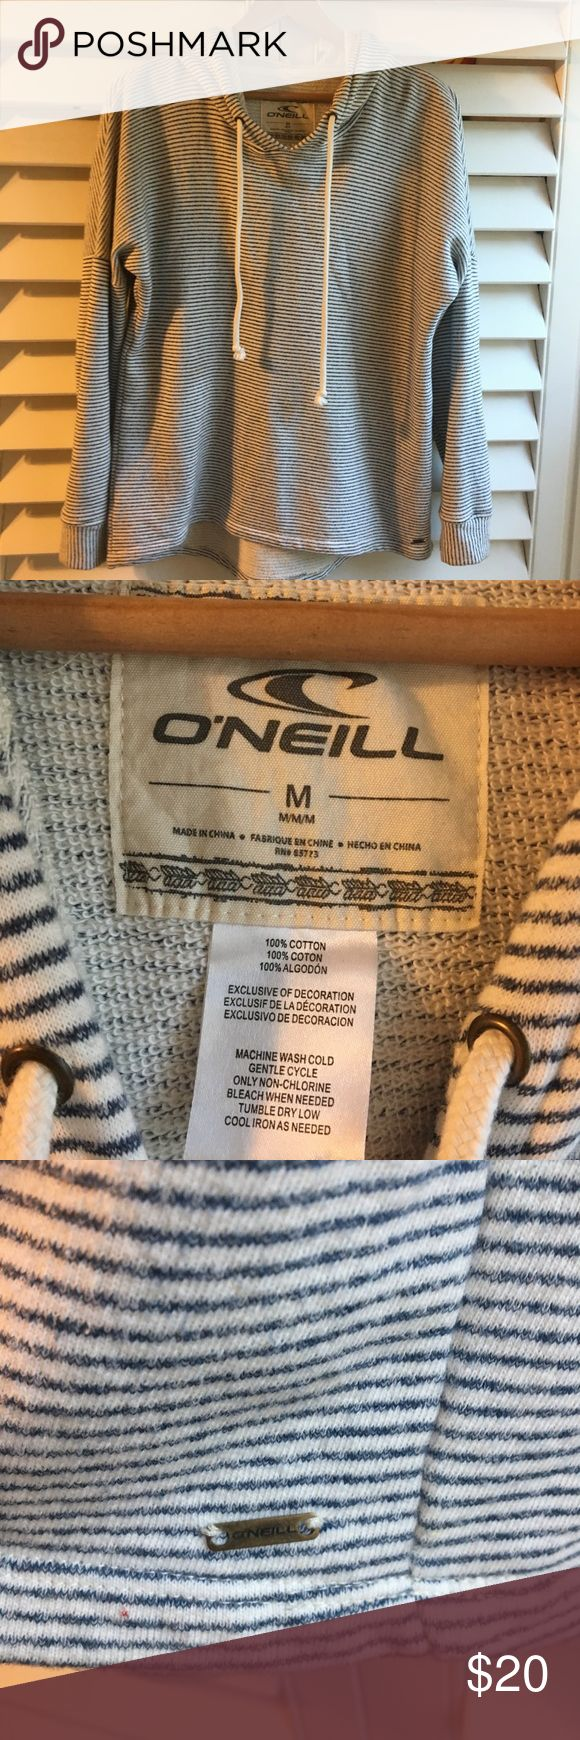 O'NEILL hooded pullover sweatshirt O'NIELL pullover hooded sweatshirt. Gently worn and from a smoke free home. 100% Cotton. Ladies size M. O'Neill Tops Sweatshirts & Hoodies